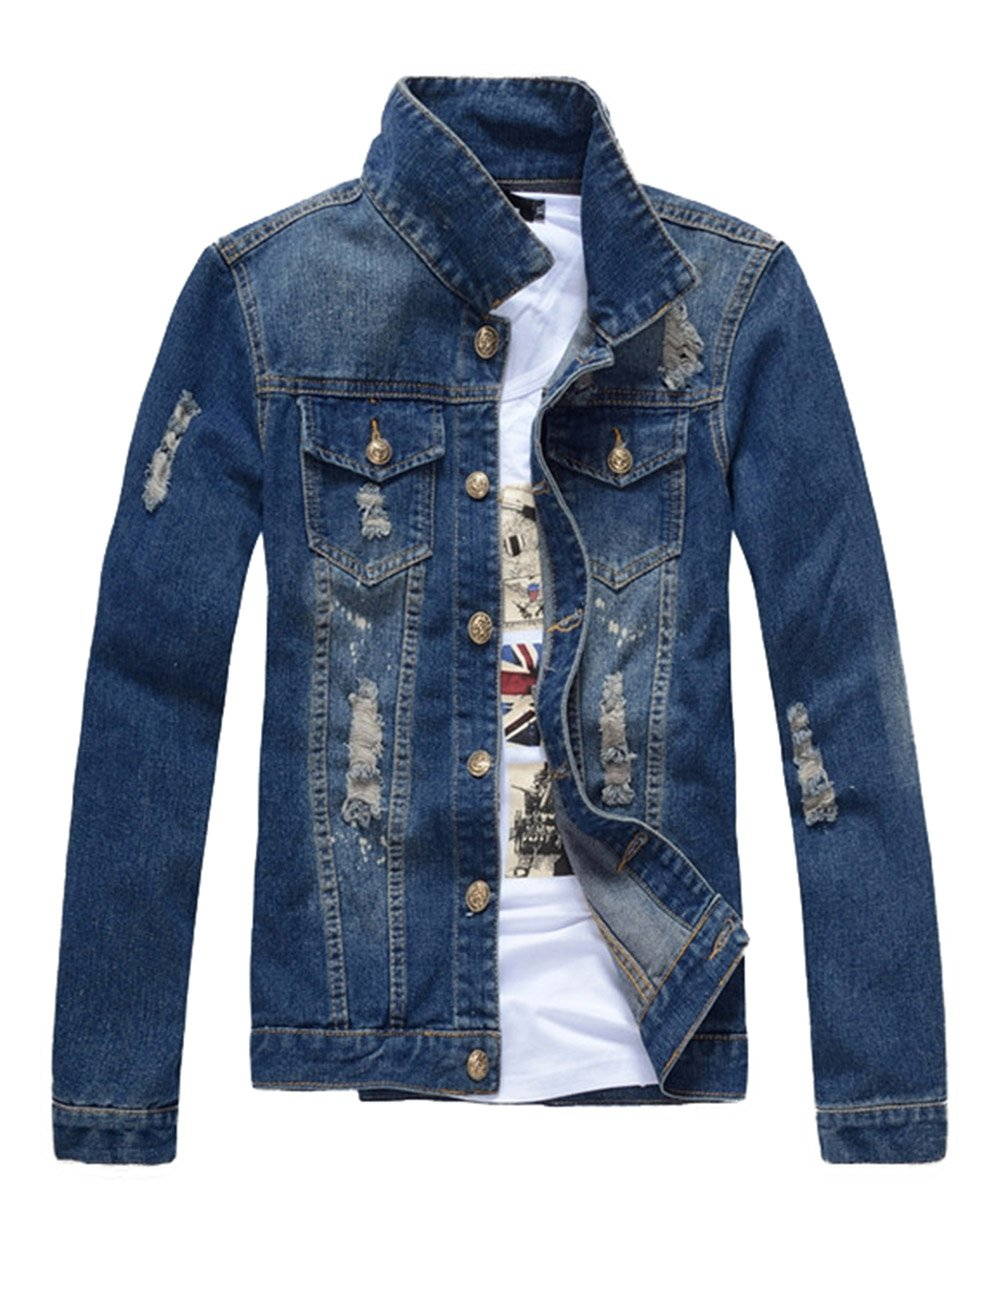 DSDZ Mens Classic Ripped Motorcycle Denim Jacket With Hole Blue M(Asian 2XL) by DSDZ